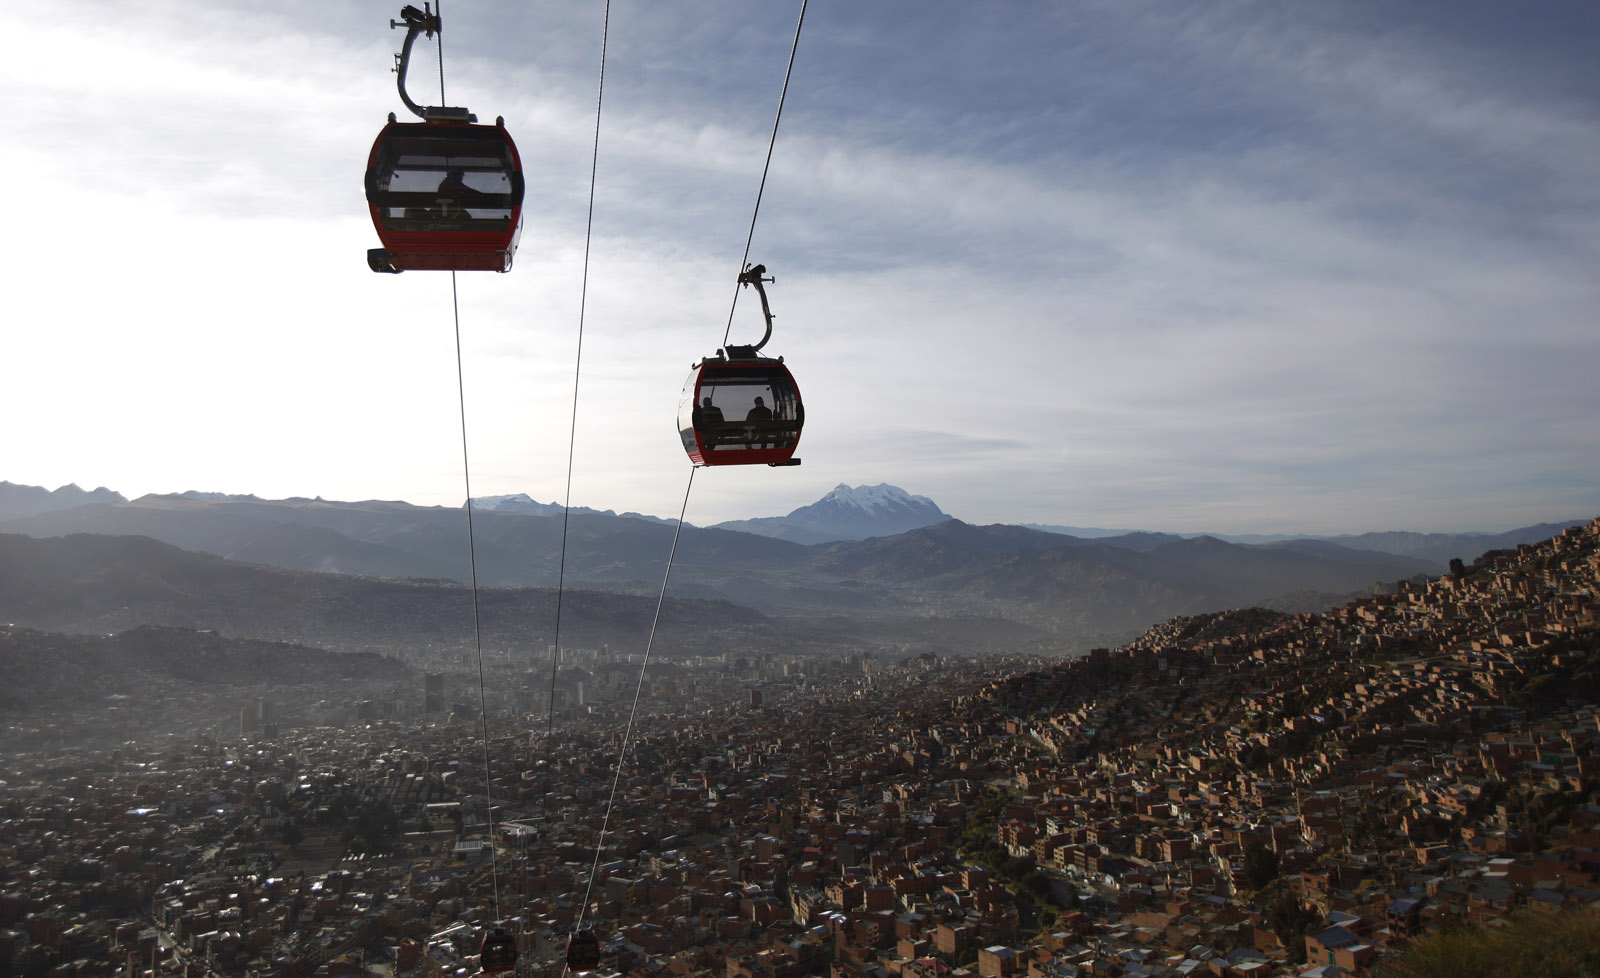 Georgetown air gondolas gain traction, funding for study